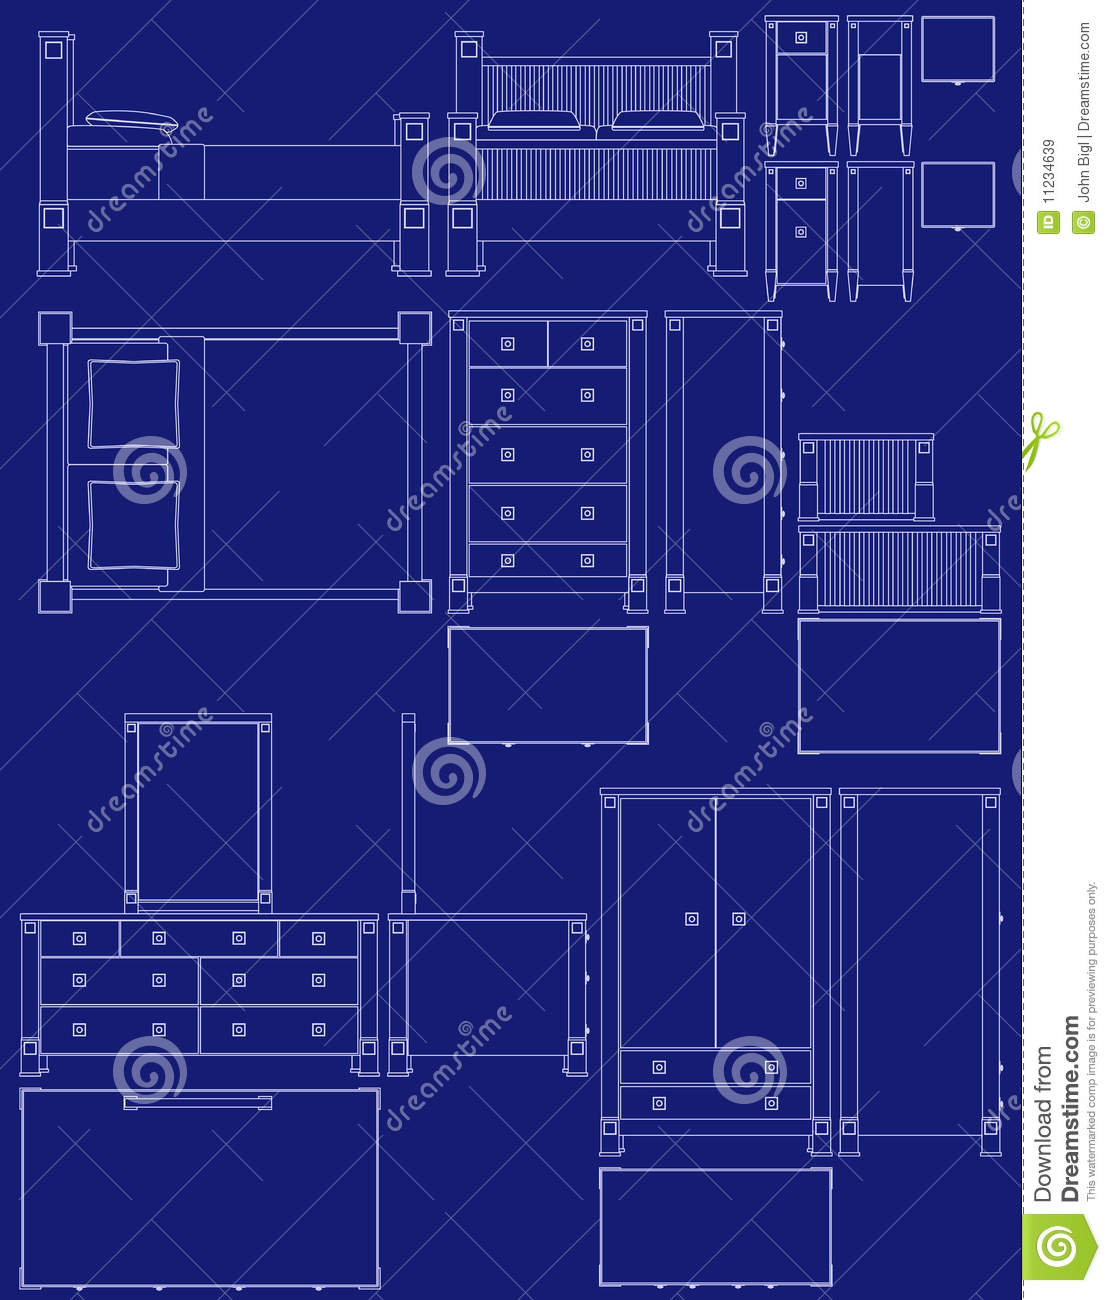 blueprint bedroom furniture stock vector image 11234639